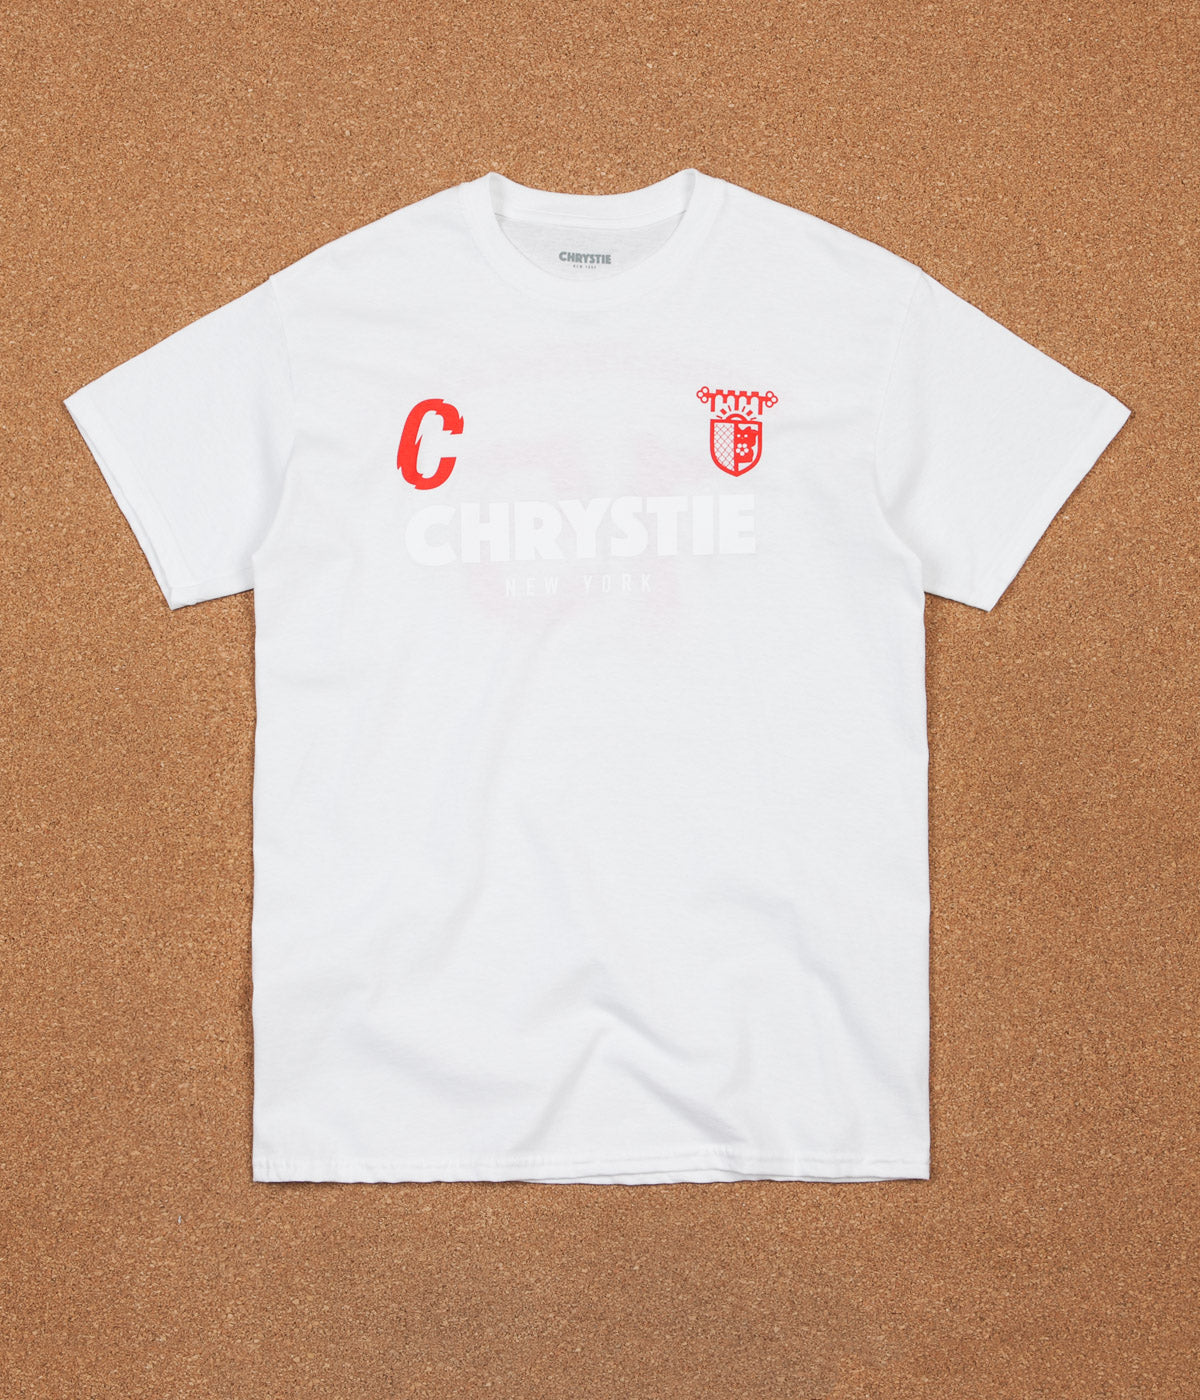 Chrystie NYC x Chinatown Soccer Club T-Shirt - White / Red